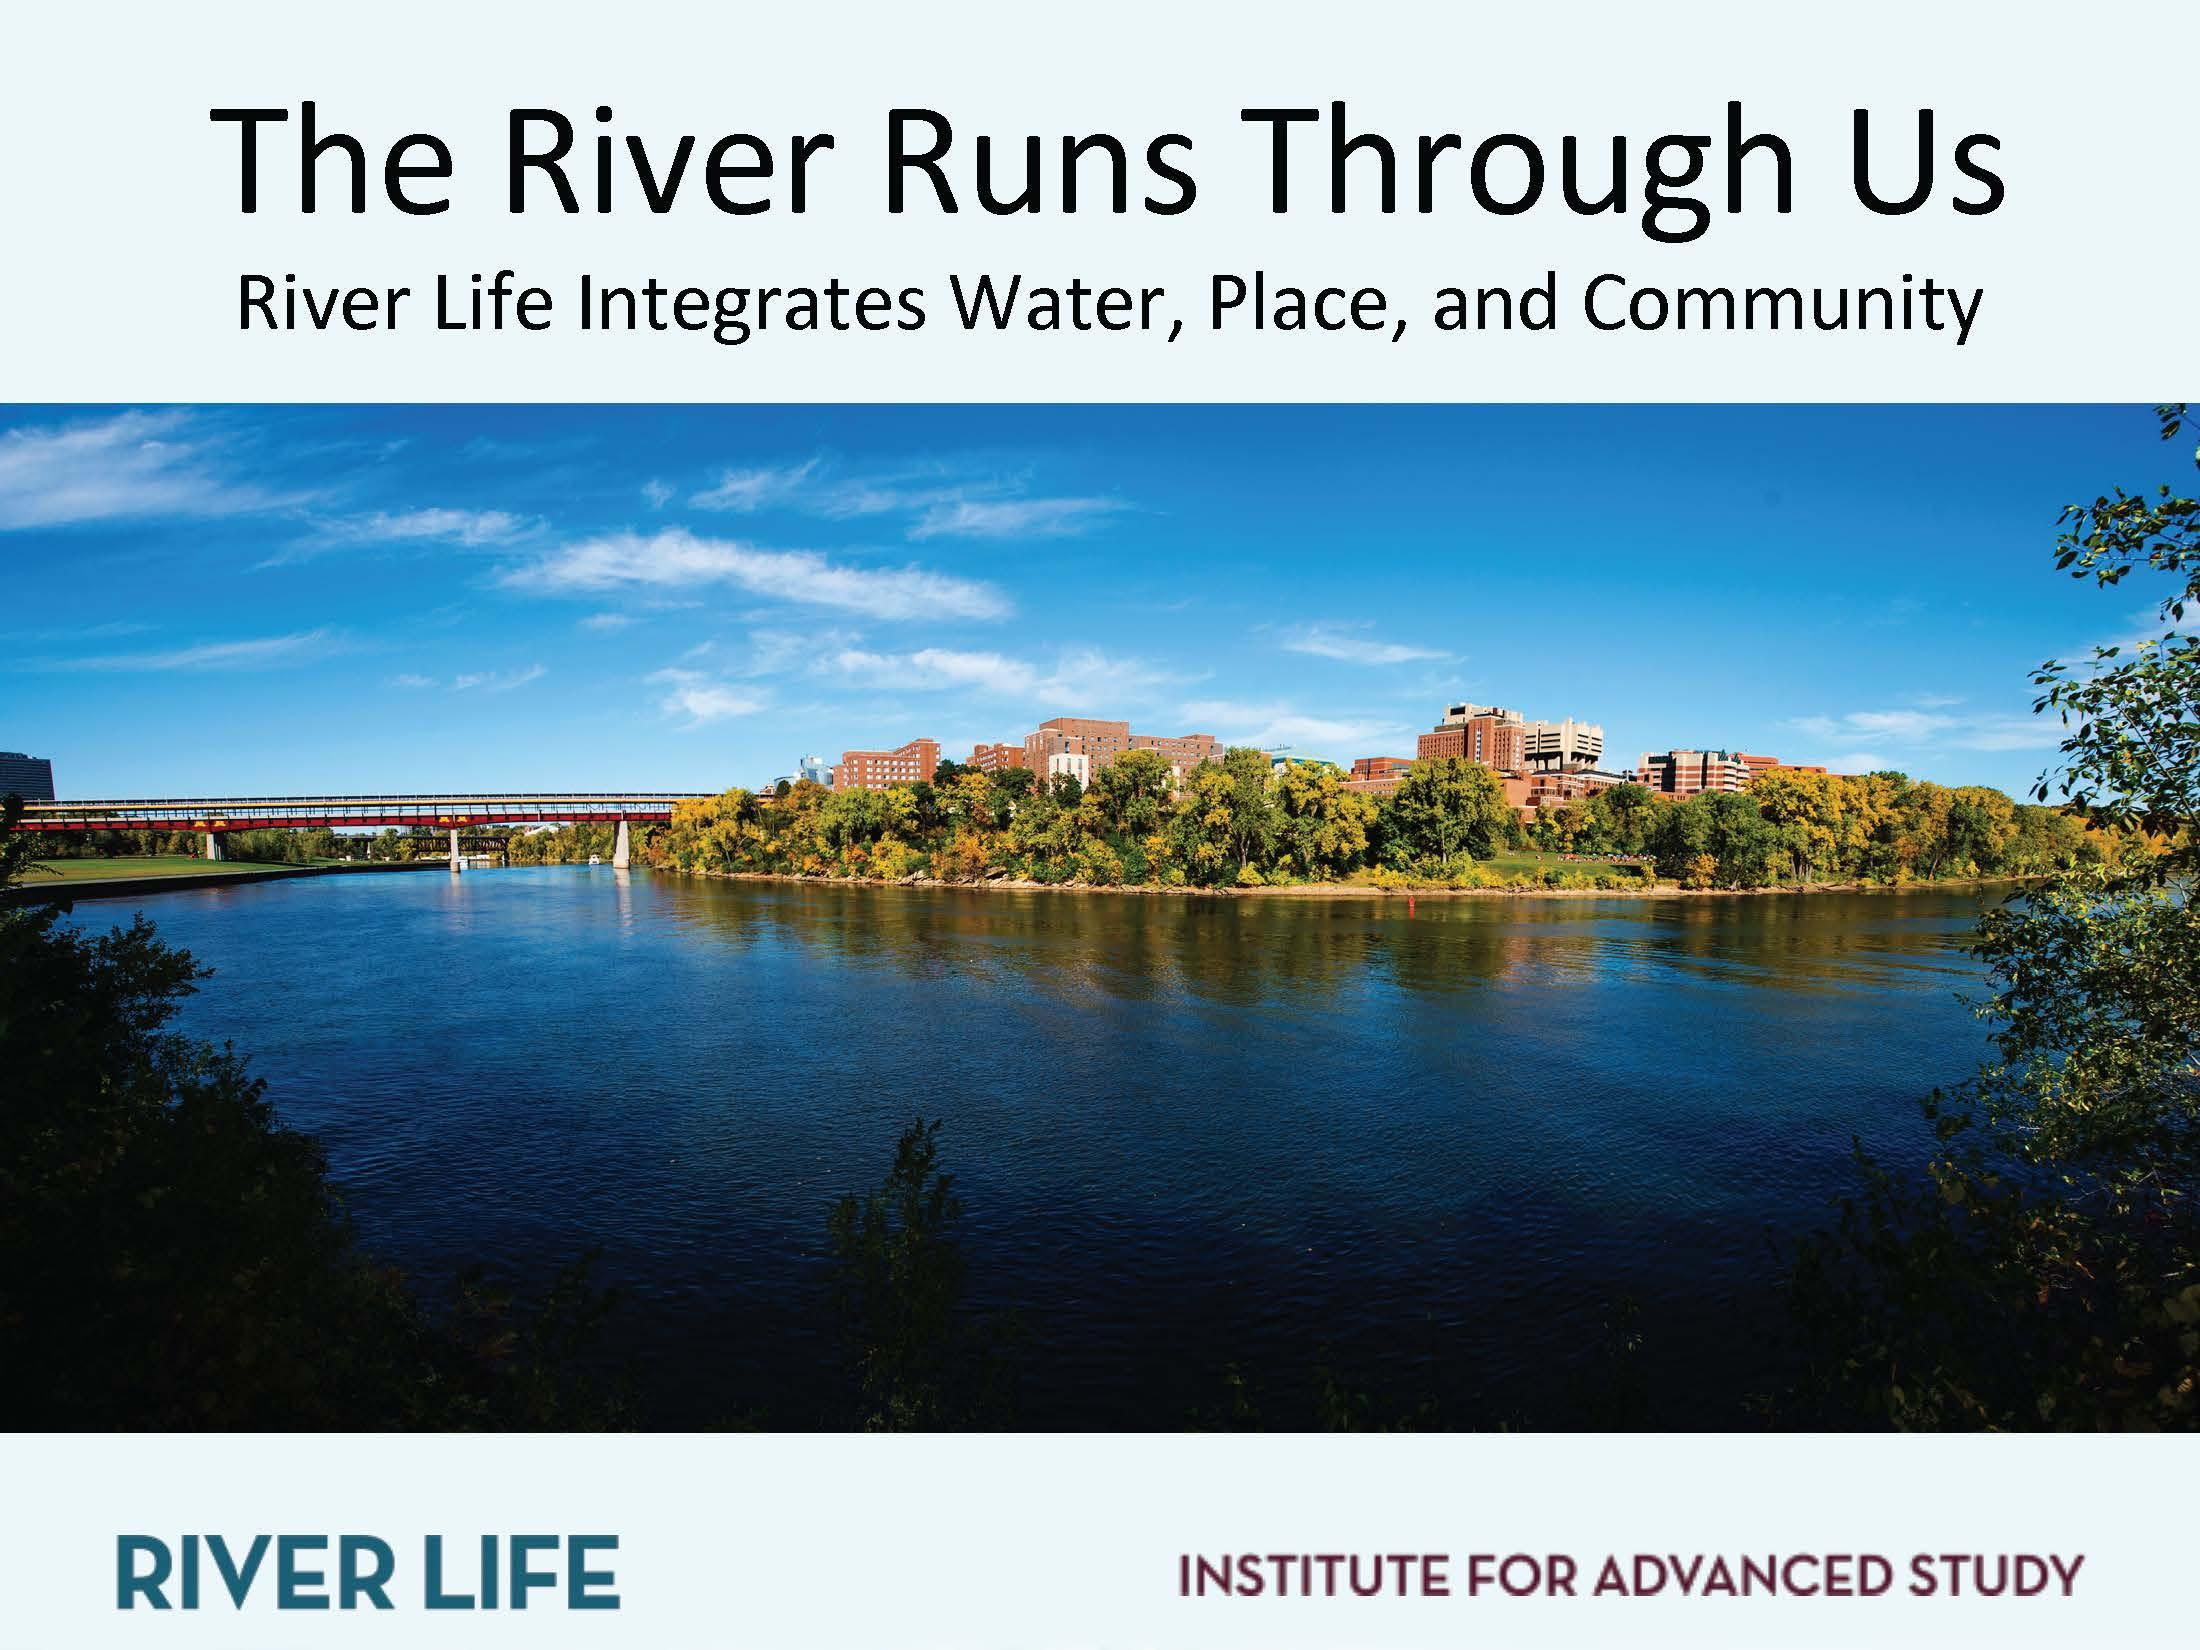 The River Runs Through Us - River Life Integrates Water, Place, and Community.